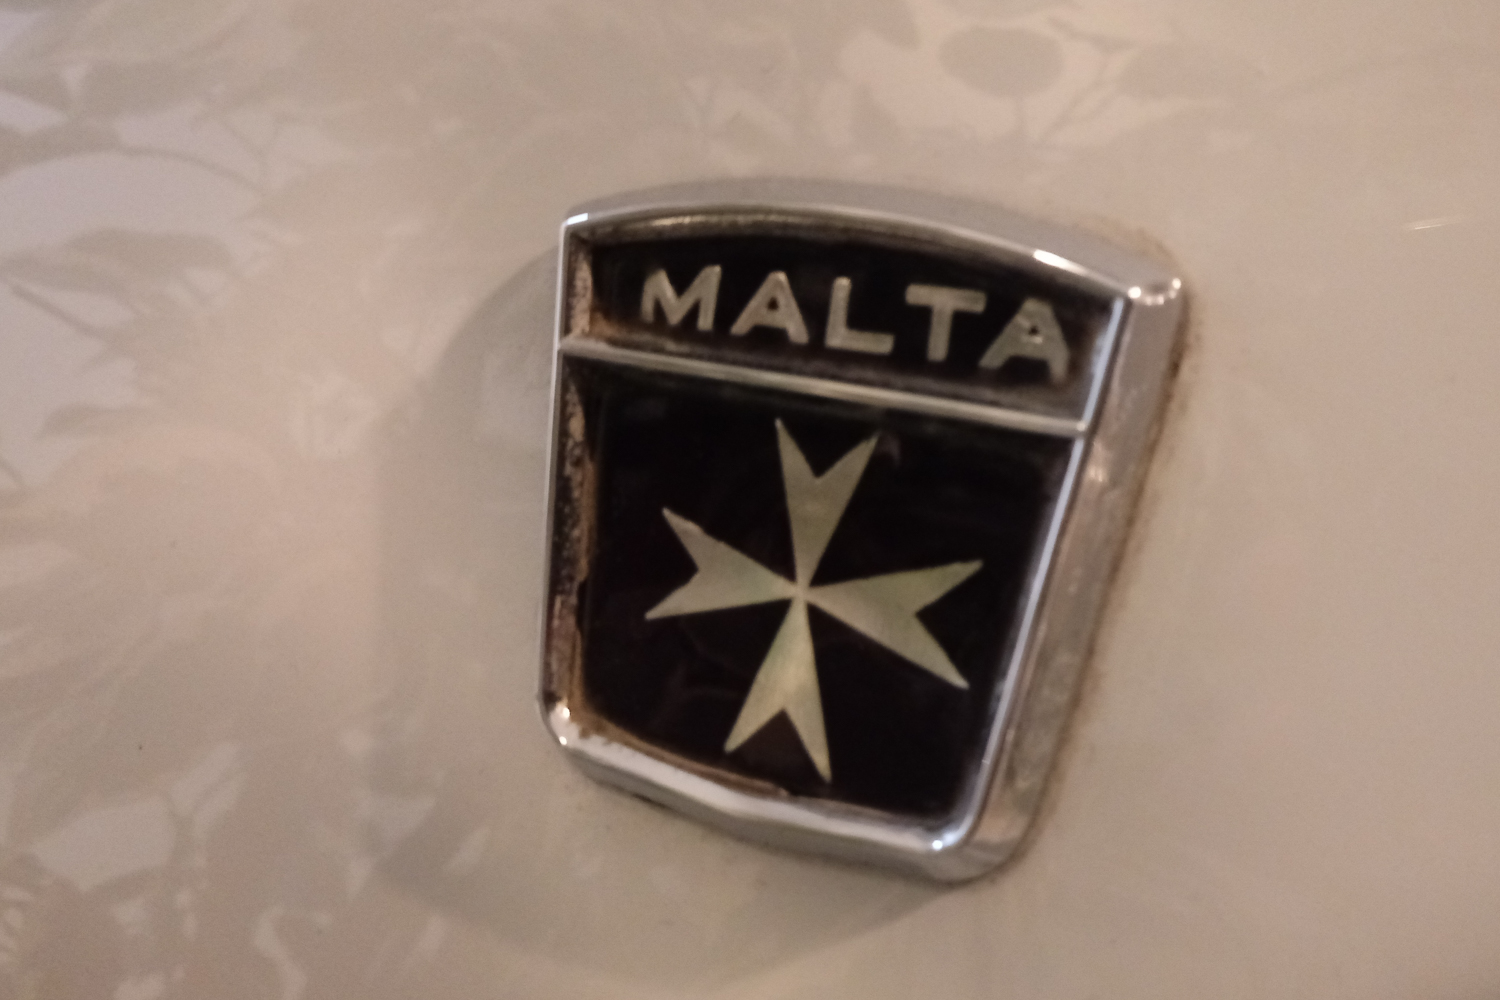 Malta Classic car Expedition